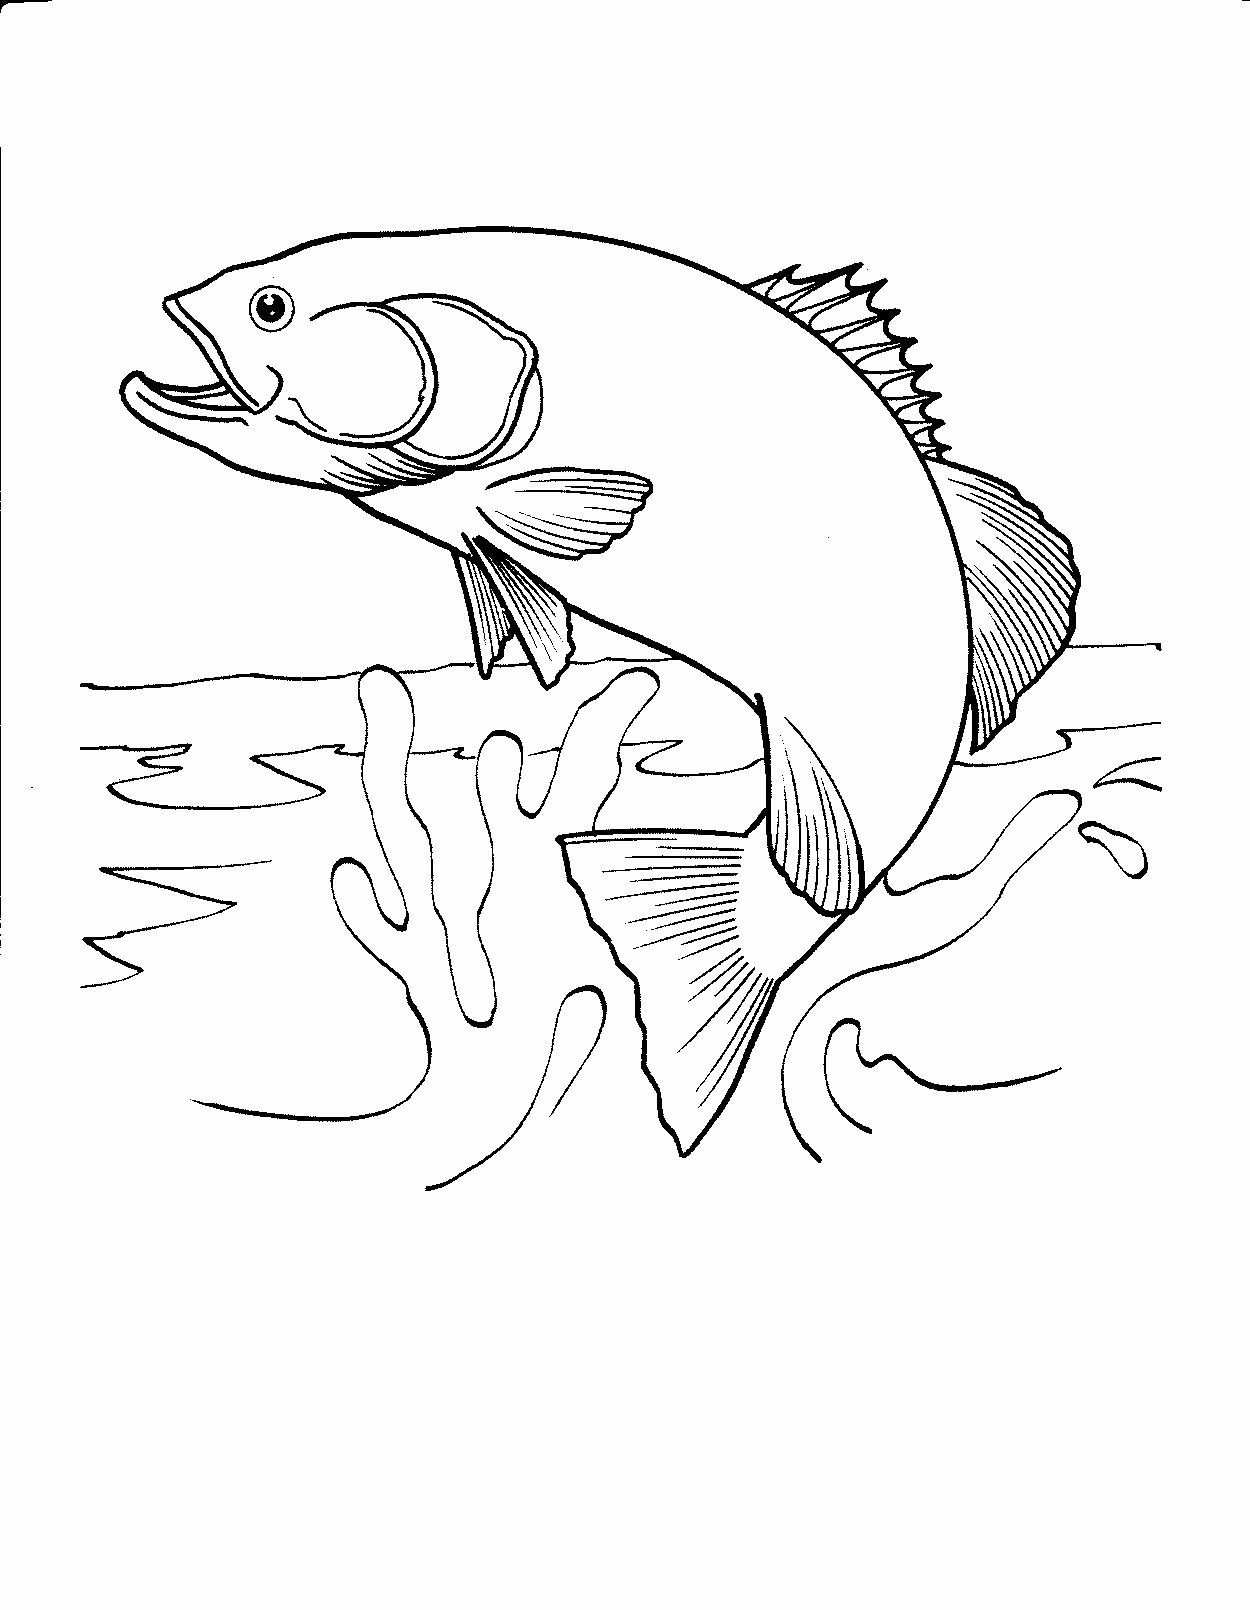 detailed fish coloring pages items similar to adult coloring page quotgold fishquot detailed detailed coloring pages fish